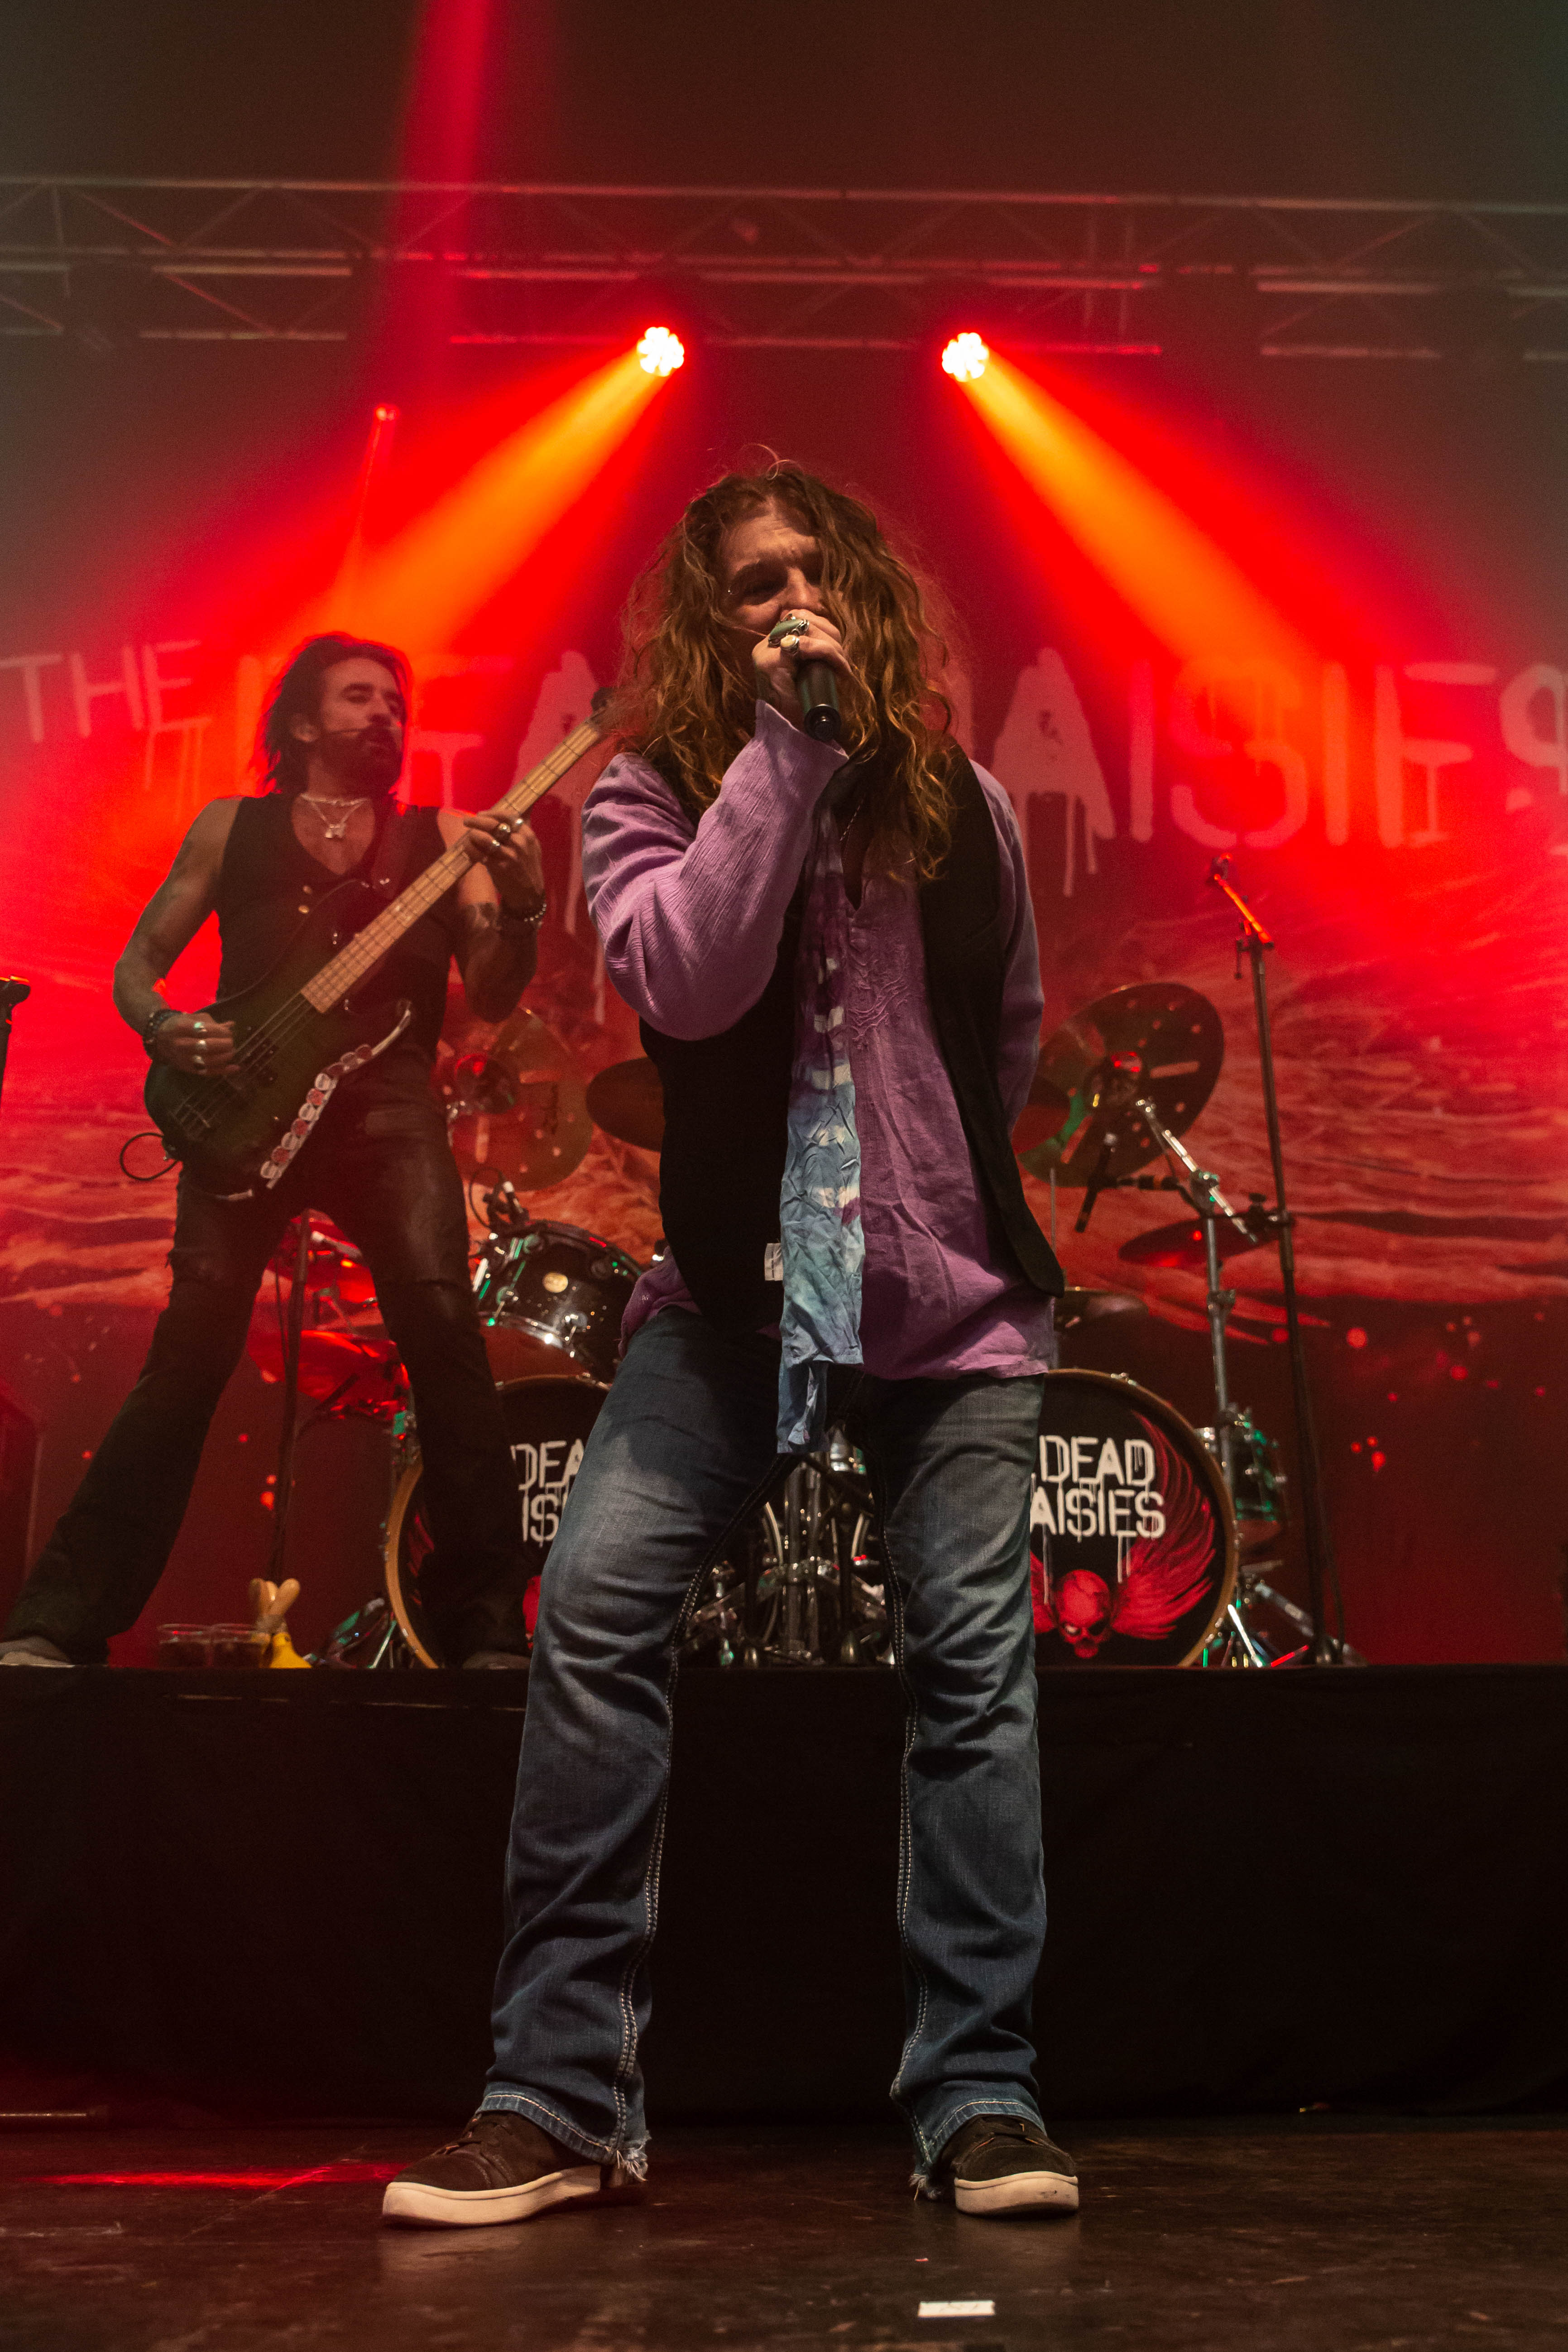 The Dead Daisies Newcastle